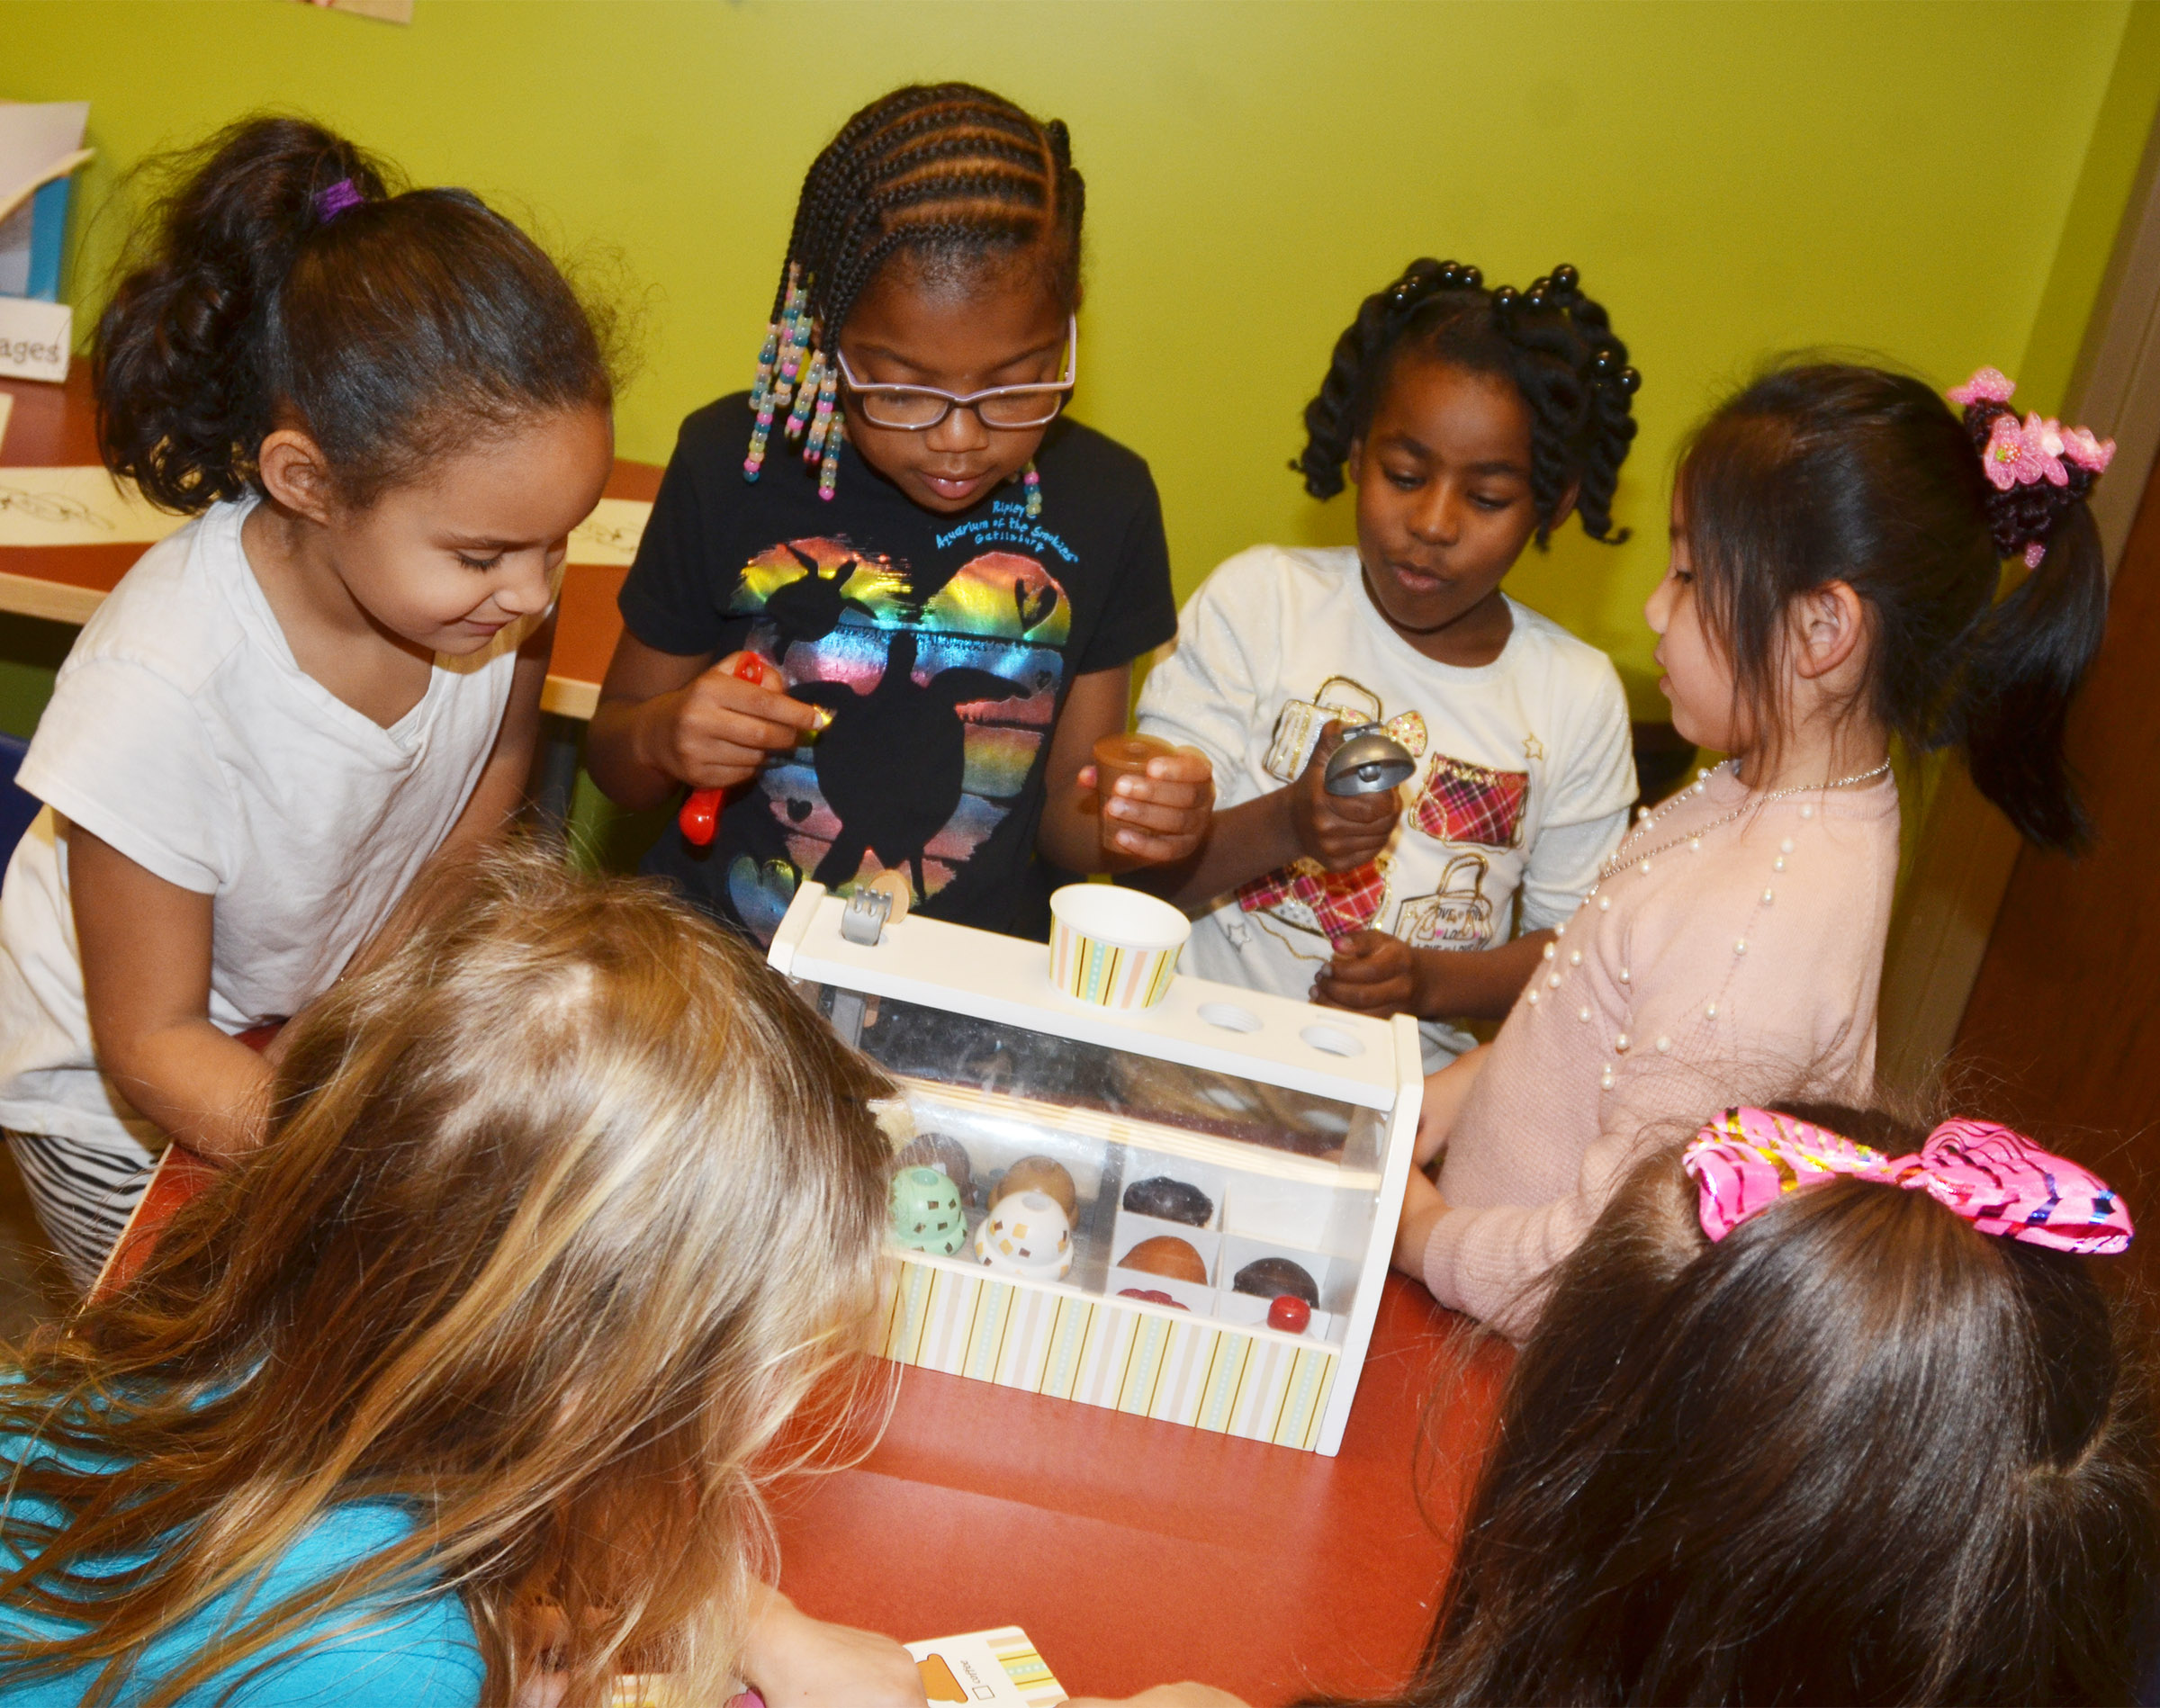 From left, CES first-graders Amani Bridgewater, Willow Griffin, Destini Gholston and Tina Jiang operate an ice cream stand for their friends at the library.